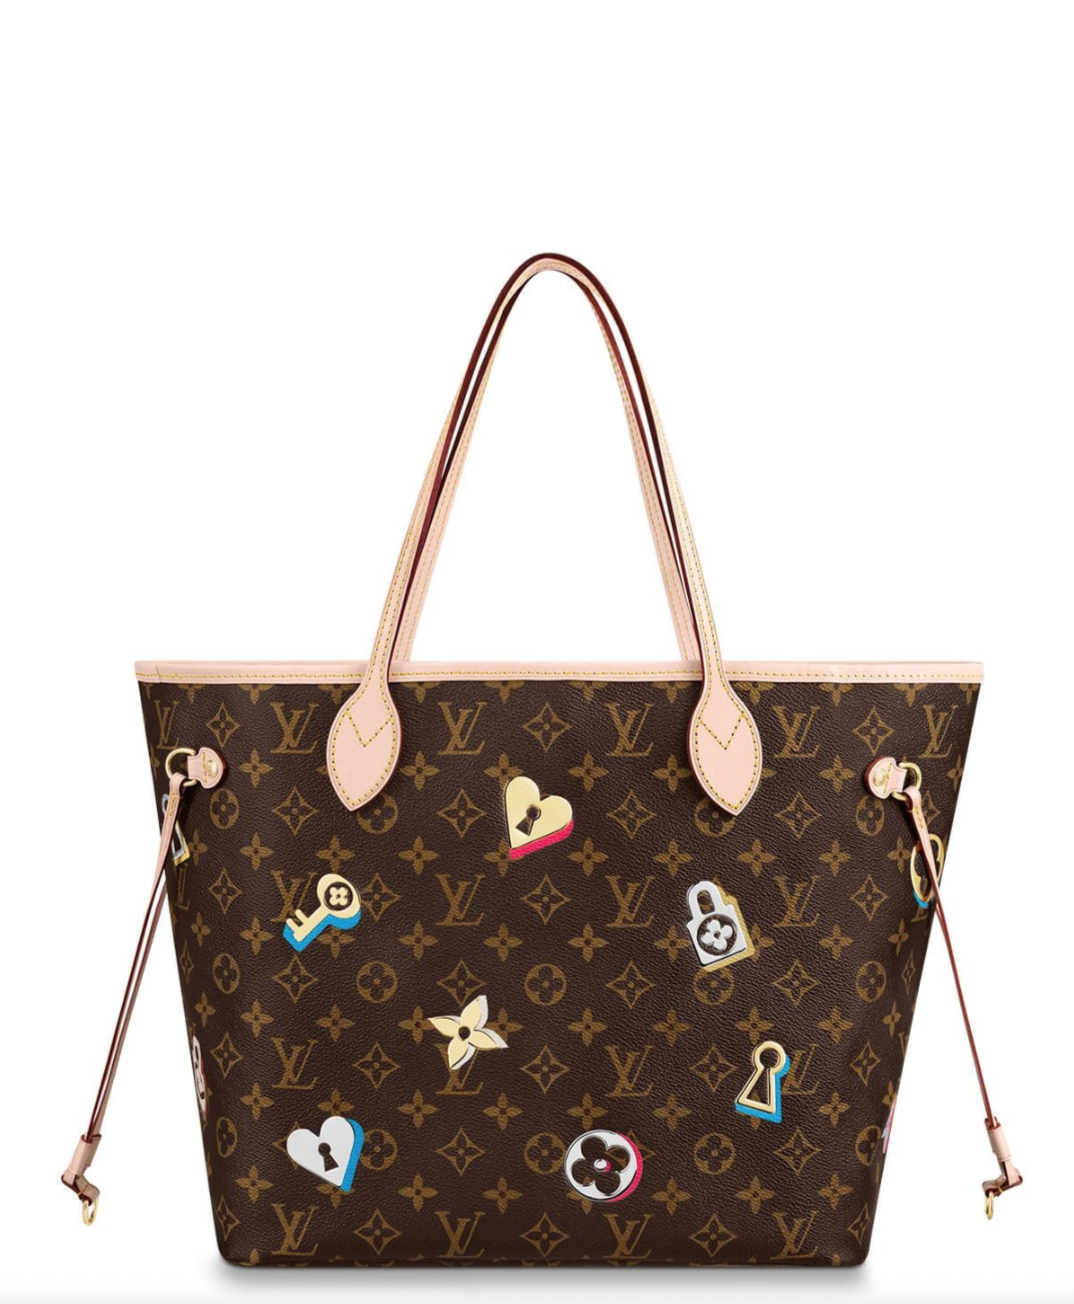 shopping bag mare, shopping bag quale comprare, shopping bag borsa, shopping bag con cerniera, shopping bag con tracolla, borse shopping bag in pelle, shopping bag cuoio, shopping bag in pvc, shopping bag in tessuto, shopping bag pelle, shopping bag tela, borsa gucci shopping bag, borsa chanel shopping bag, borsa armani shopping bag, borsa bottega veneta shopping bag, borsa celine shopping bag, borsa stella mccartney shopping bag